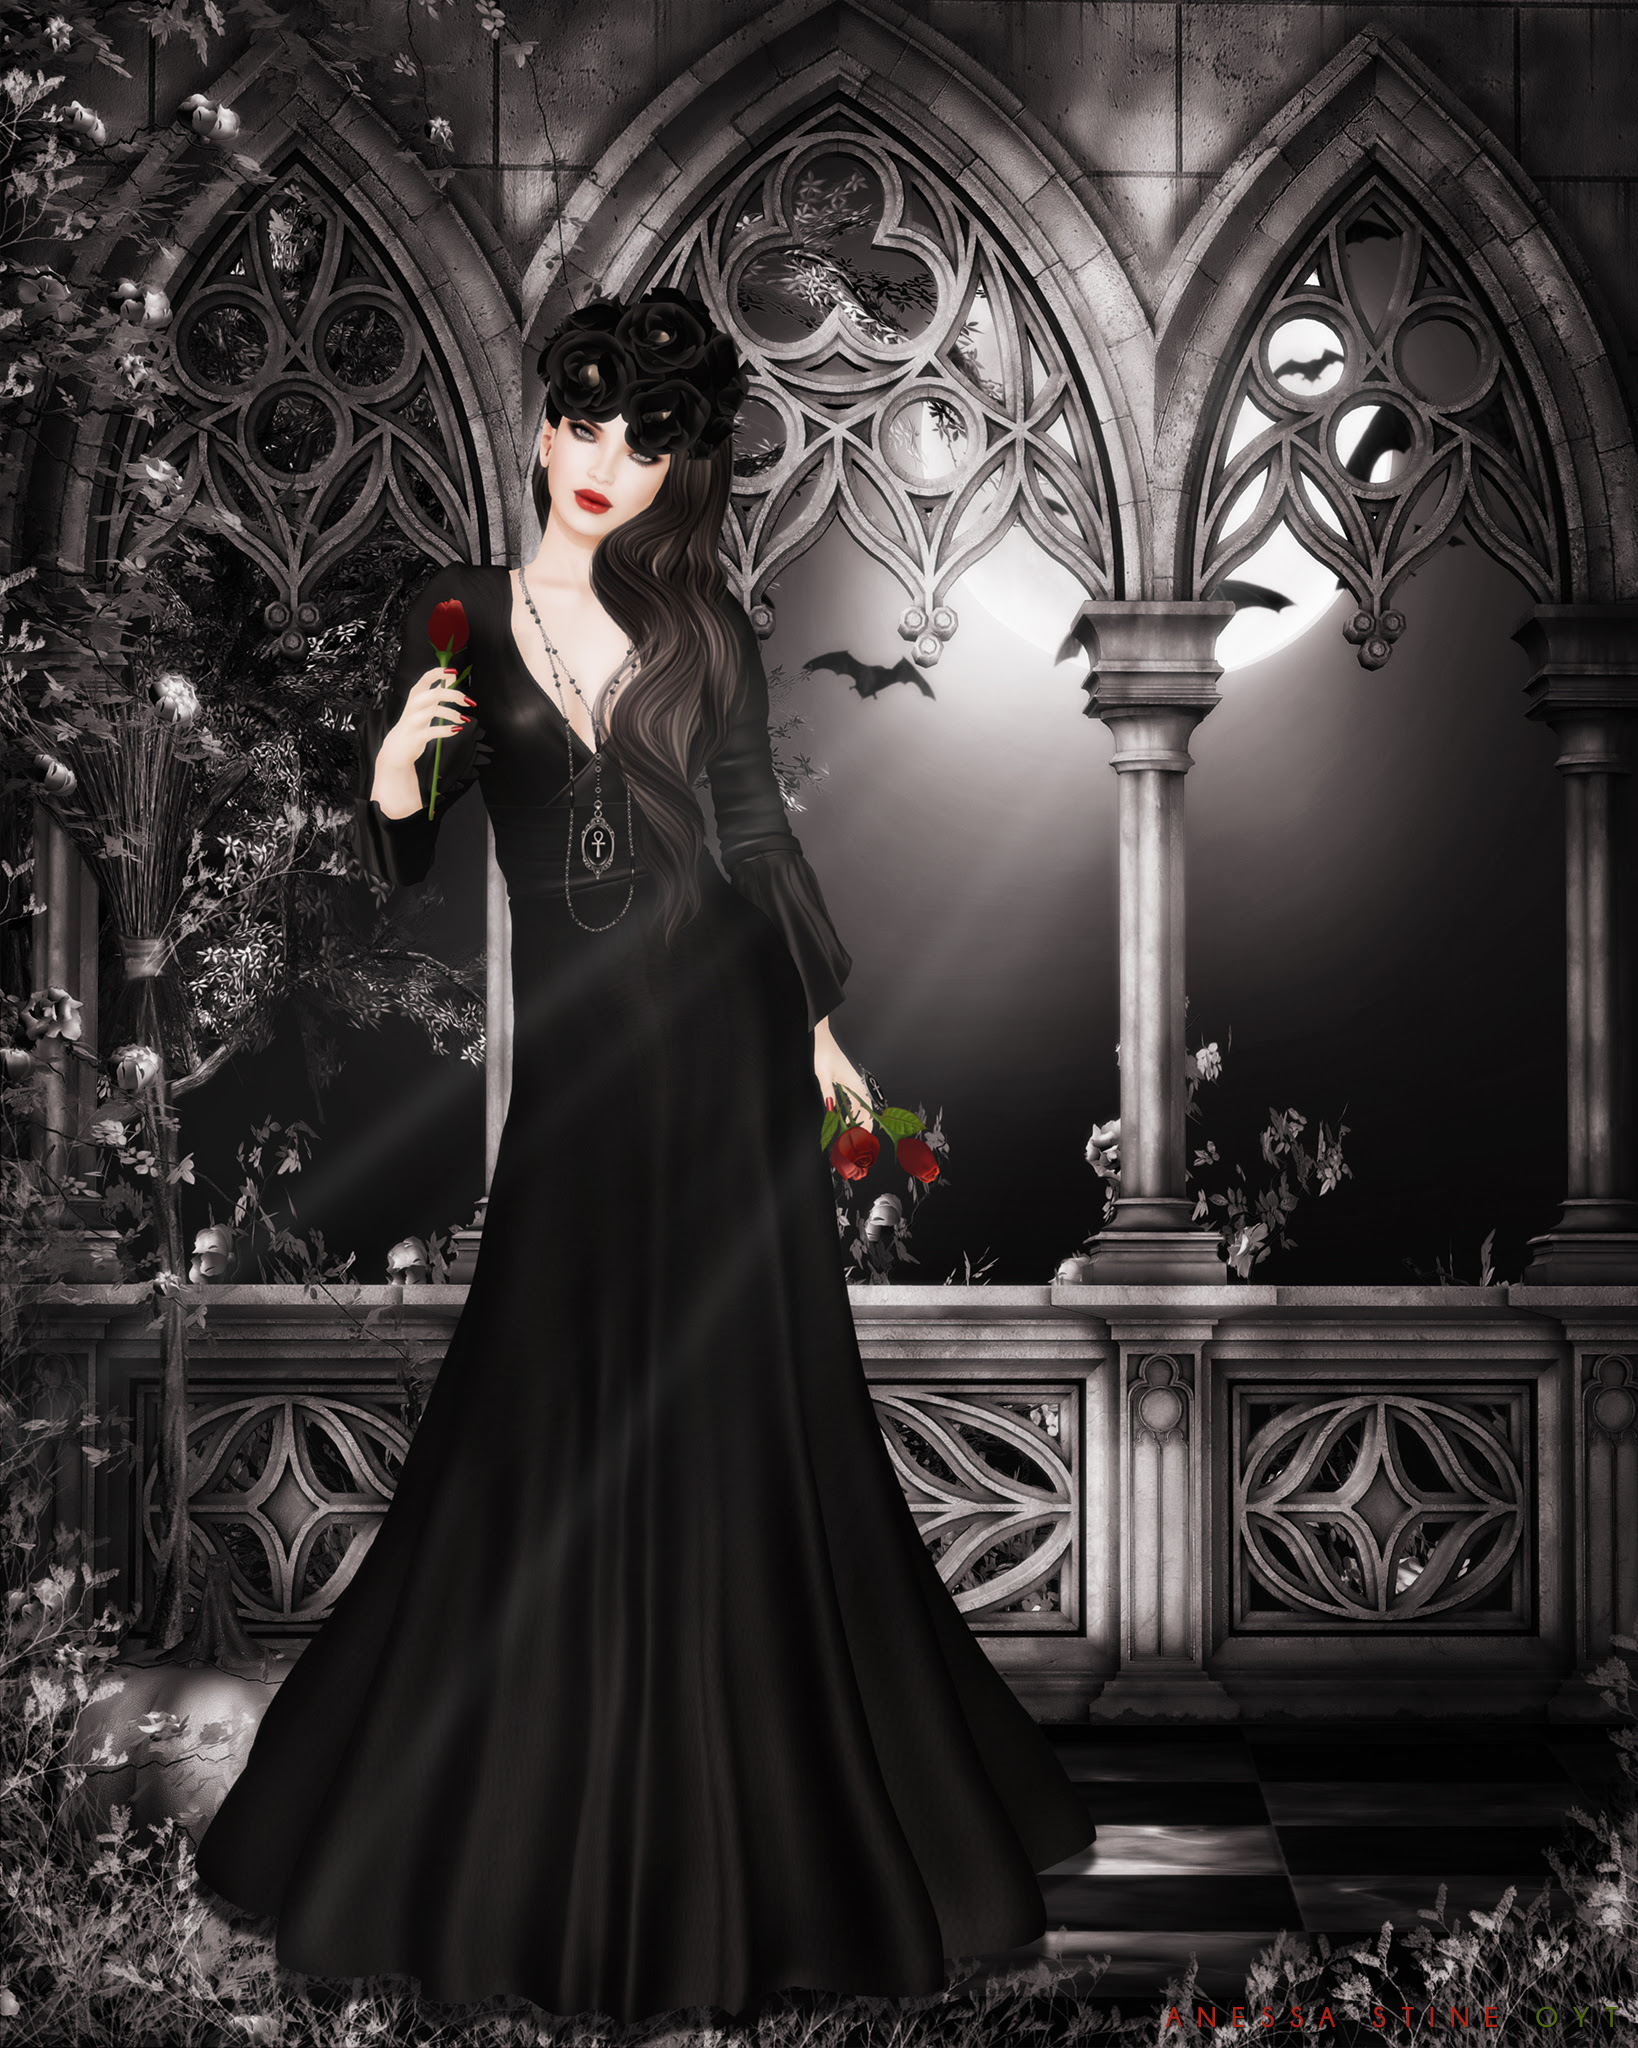 OYT: Modern Day Morticia